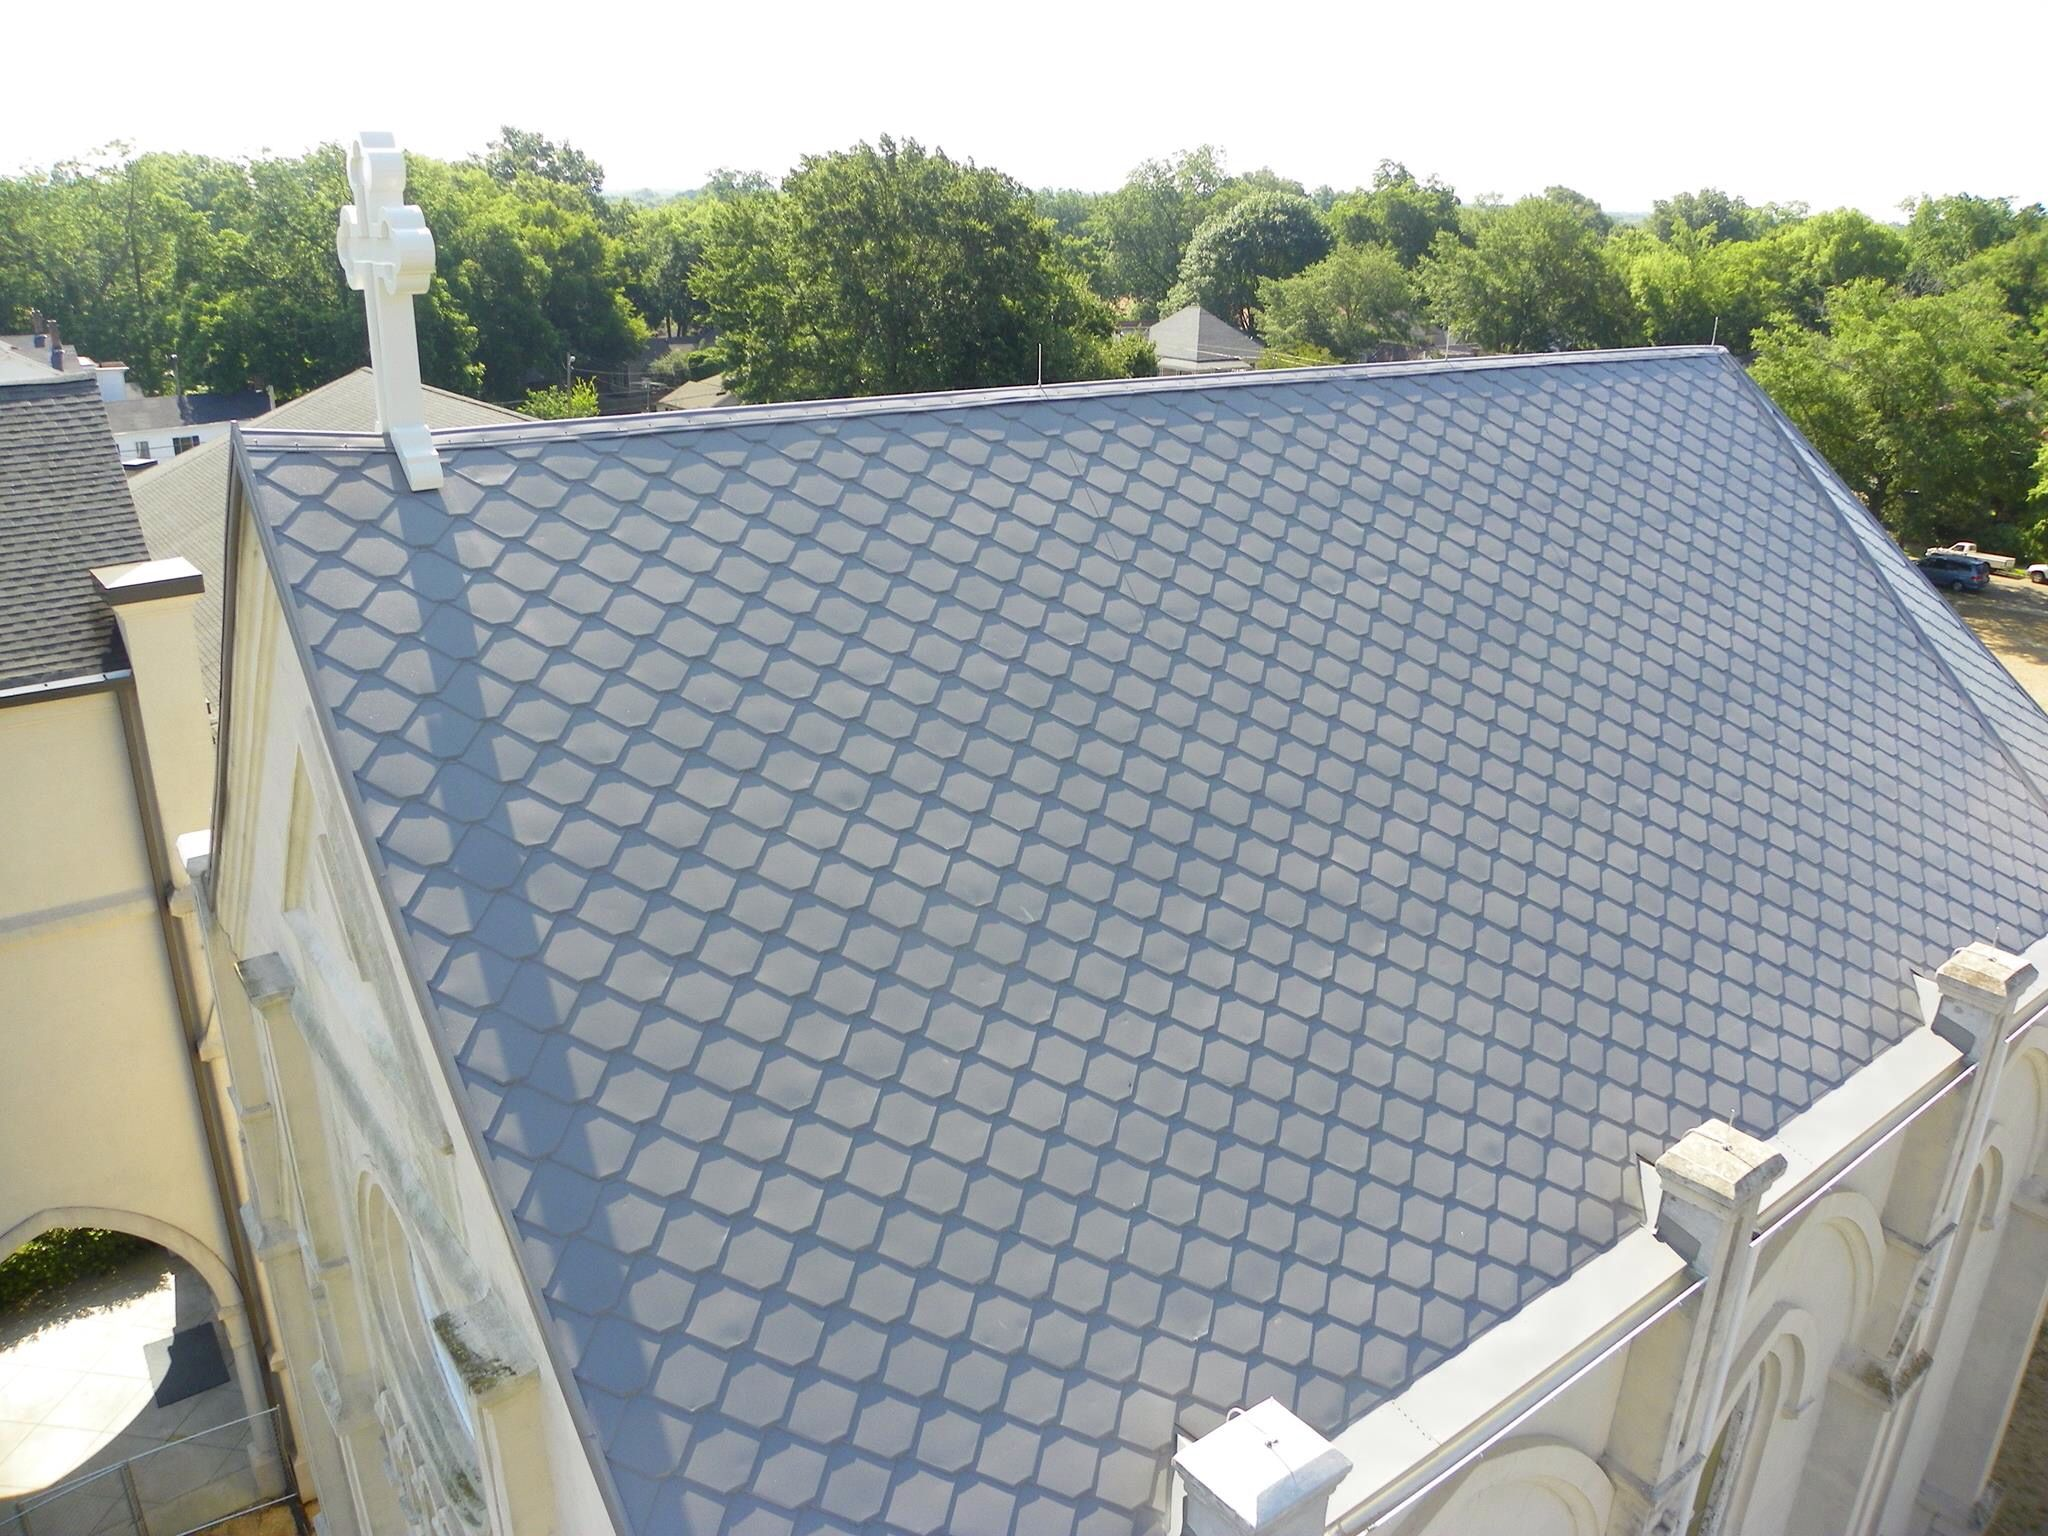 Annunciation Catholic Church Restoration New Roof Is Single Metal Tiles Same Atas Product As We Installed Historic Renovation Roofing Columbus Mississippi